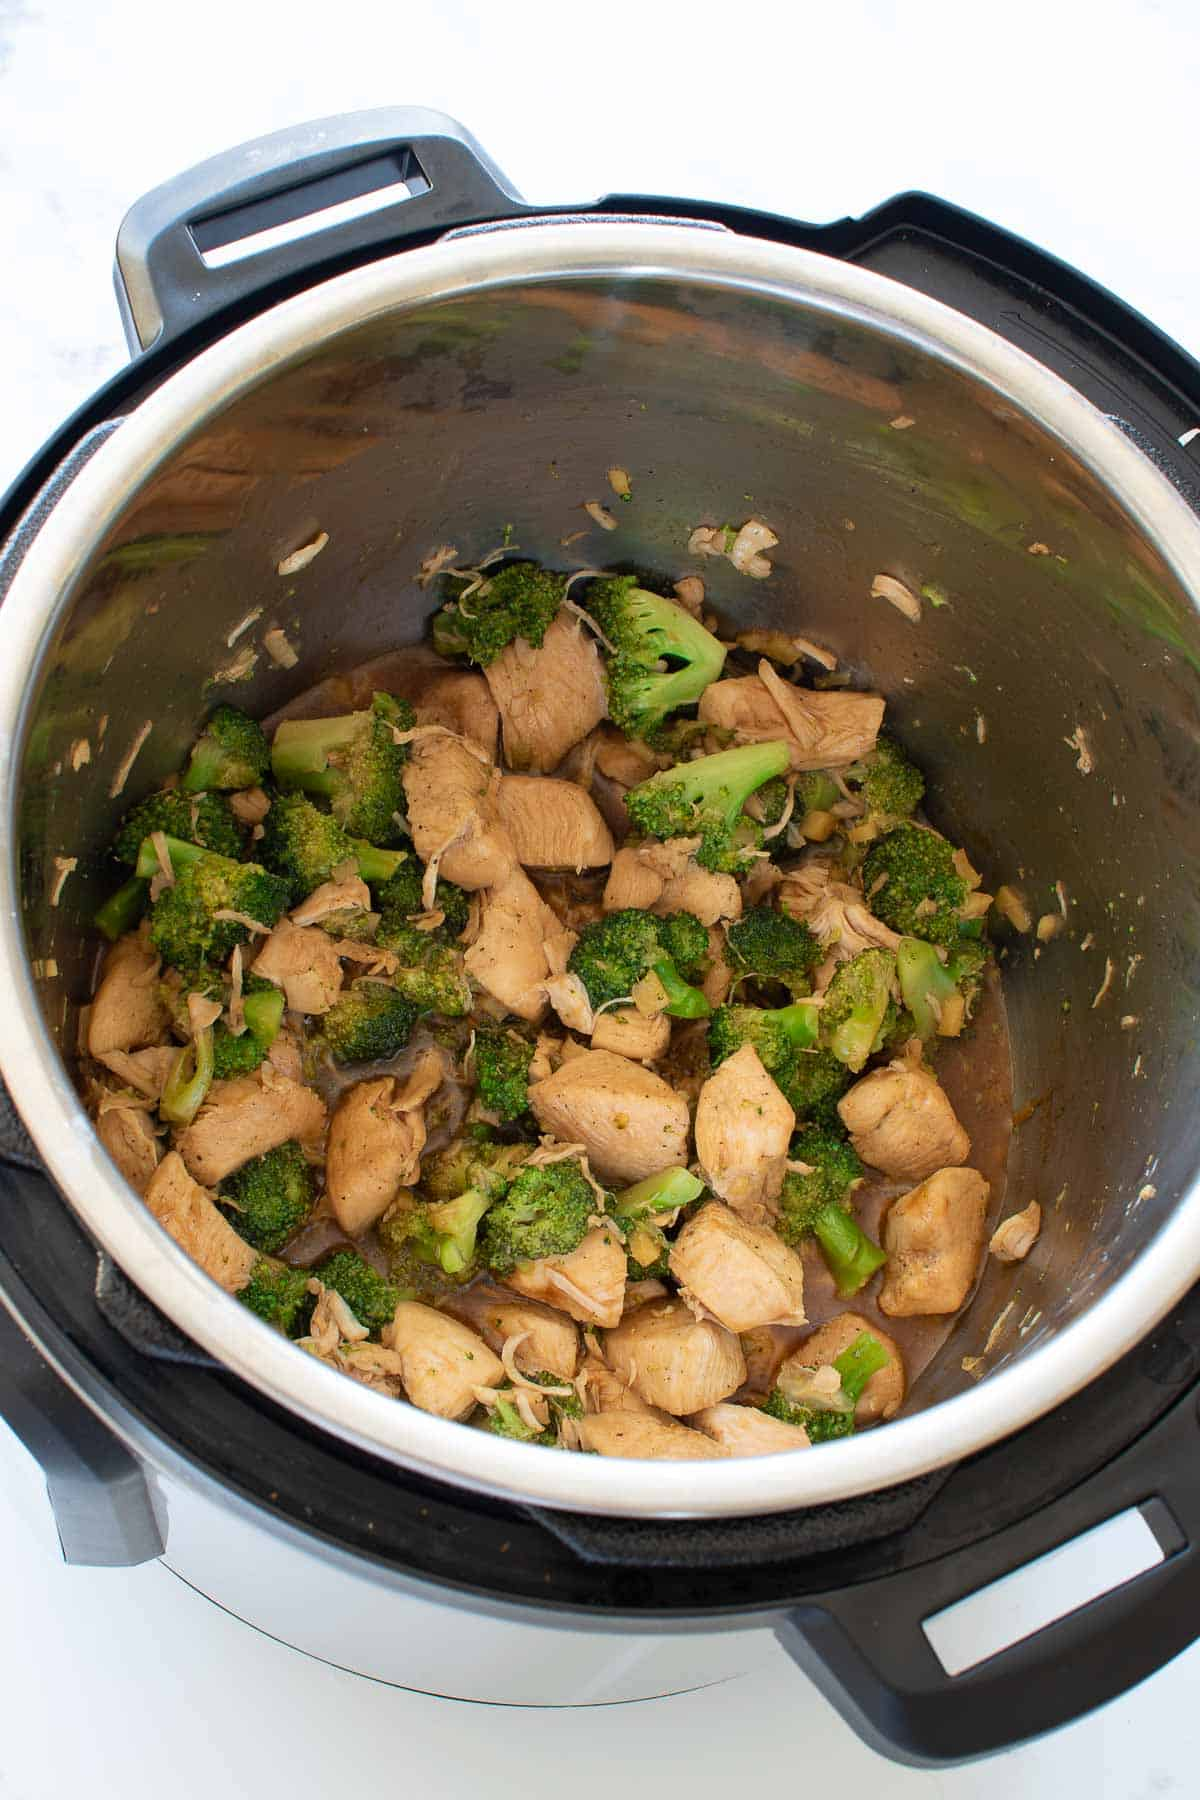 Chicken and broccoli in an instant pot.